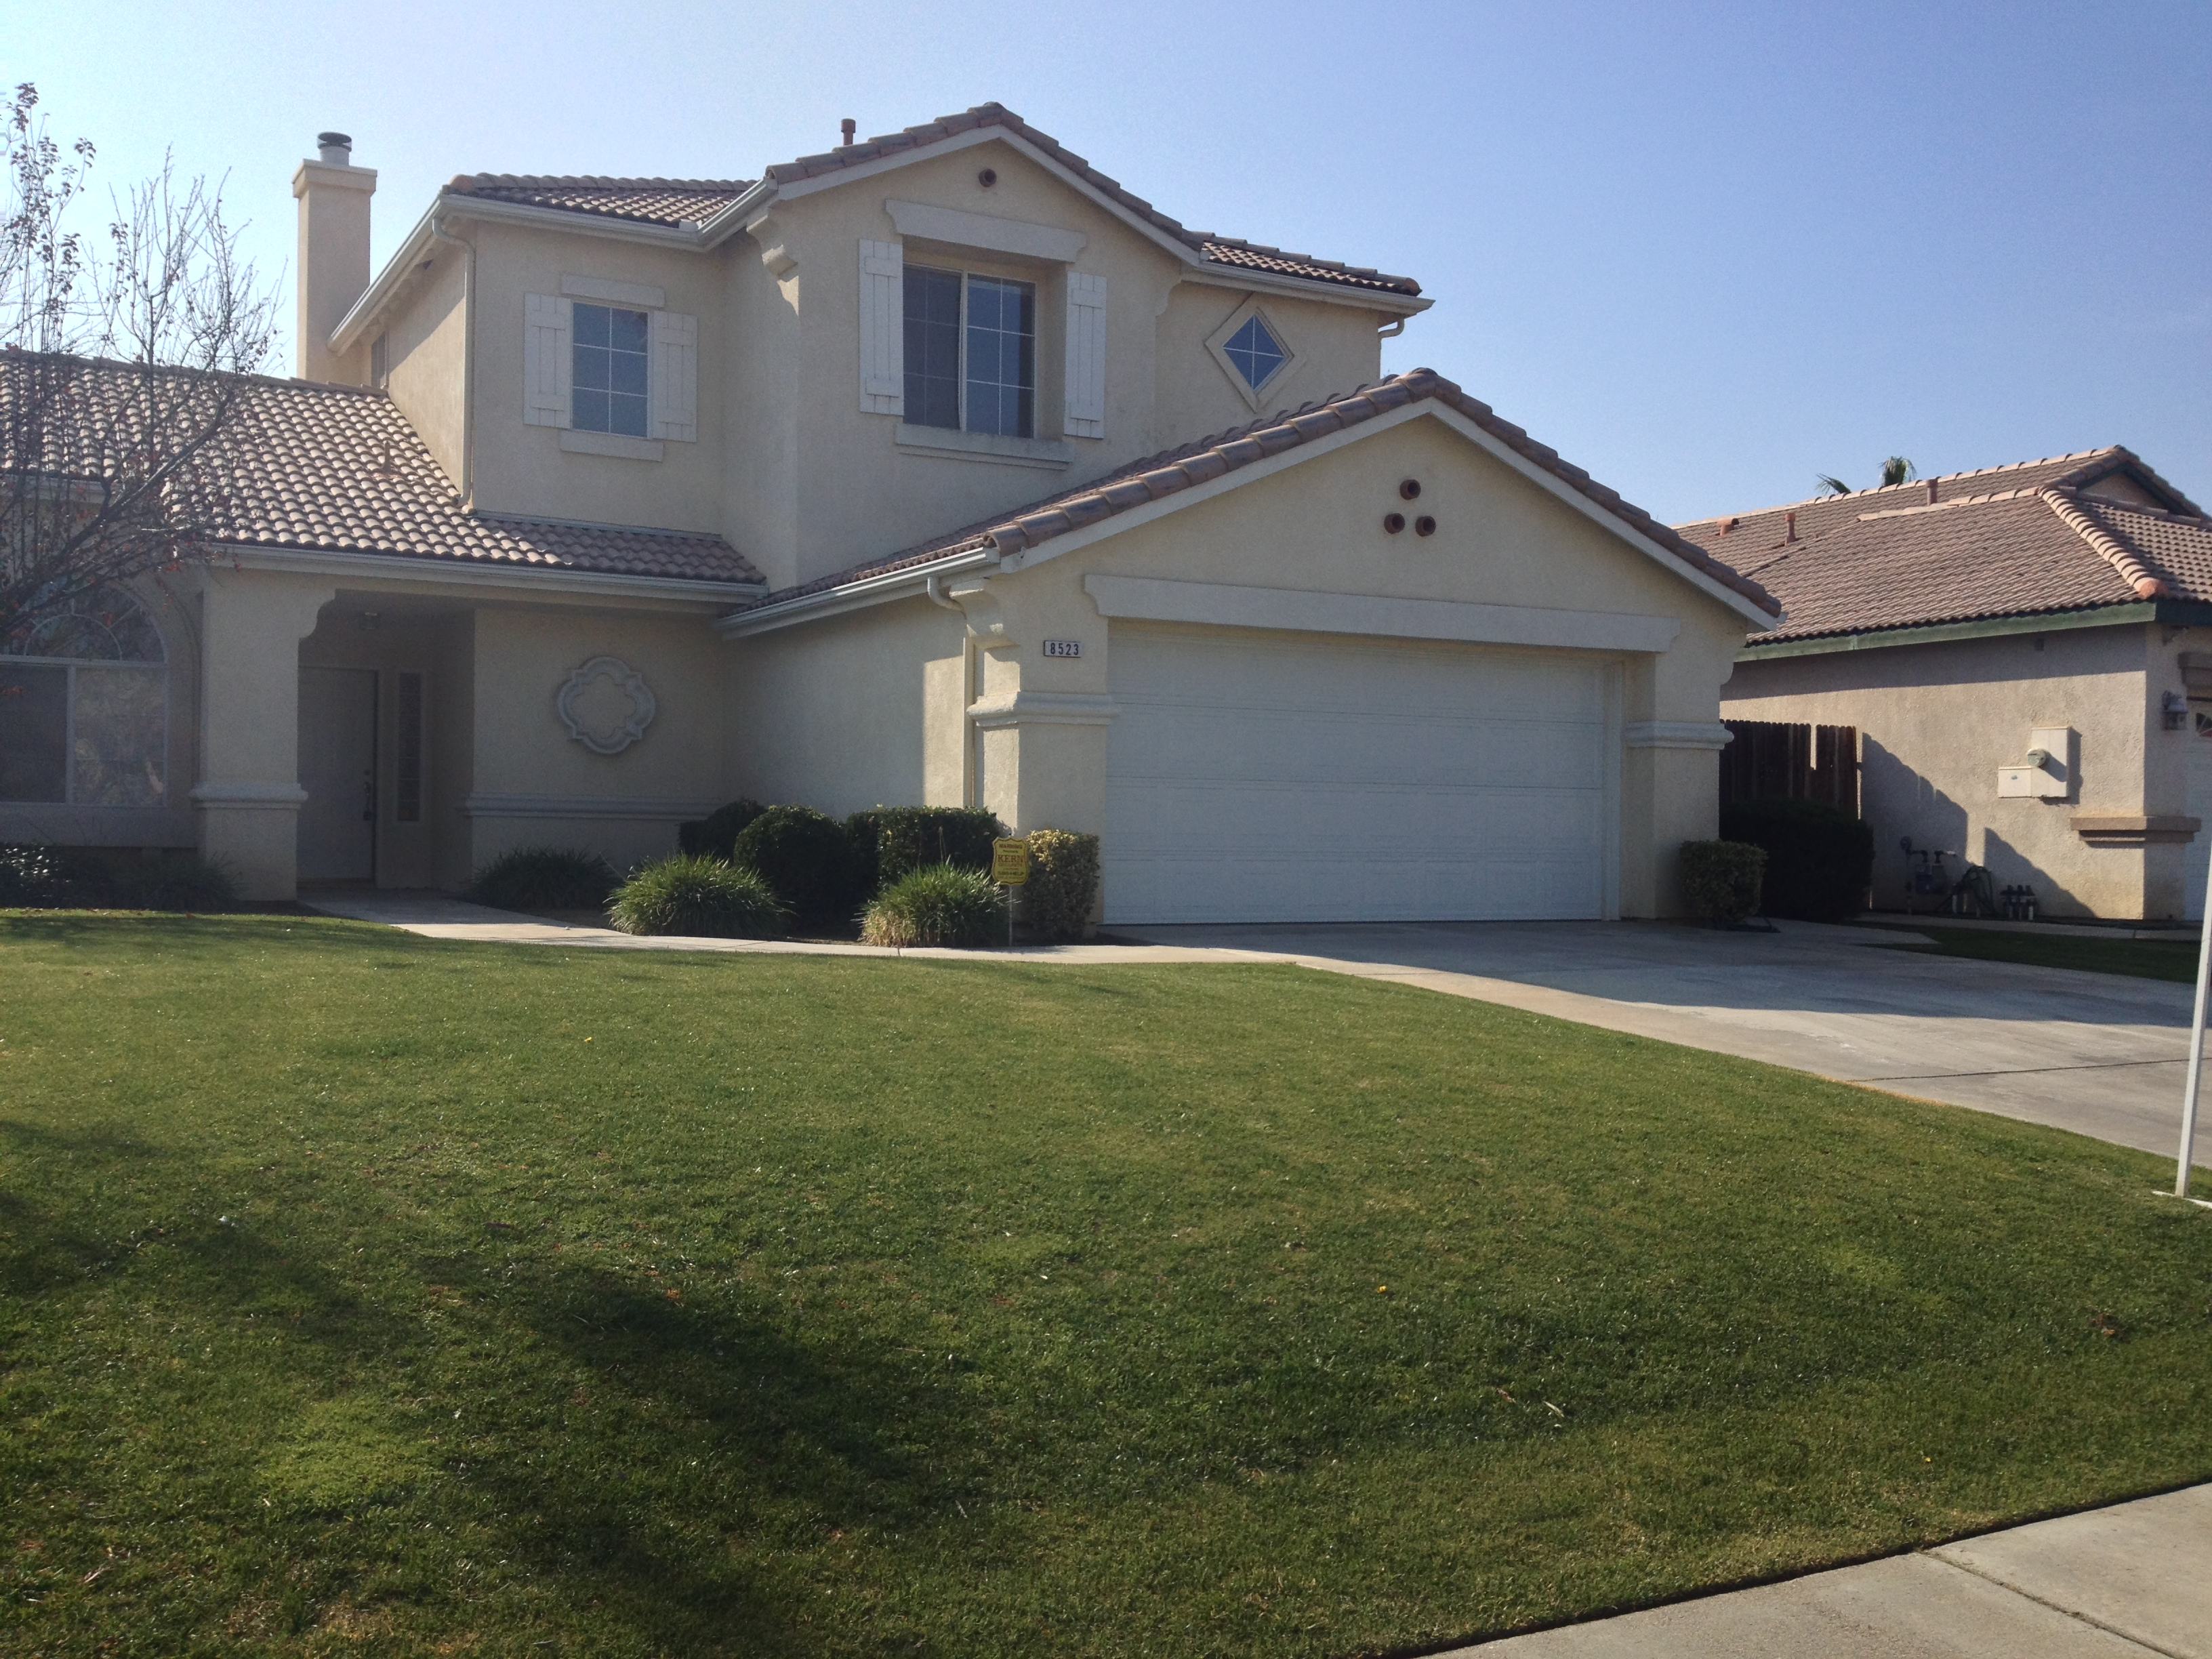 $1700 – 8523 Spanish Bay Dr., Bakersfield, CA 93312 northwest house for rent